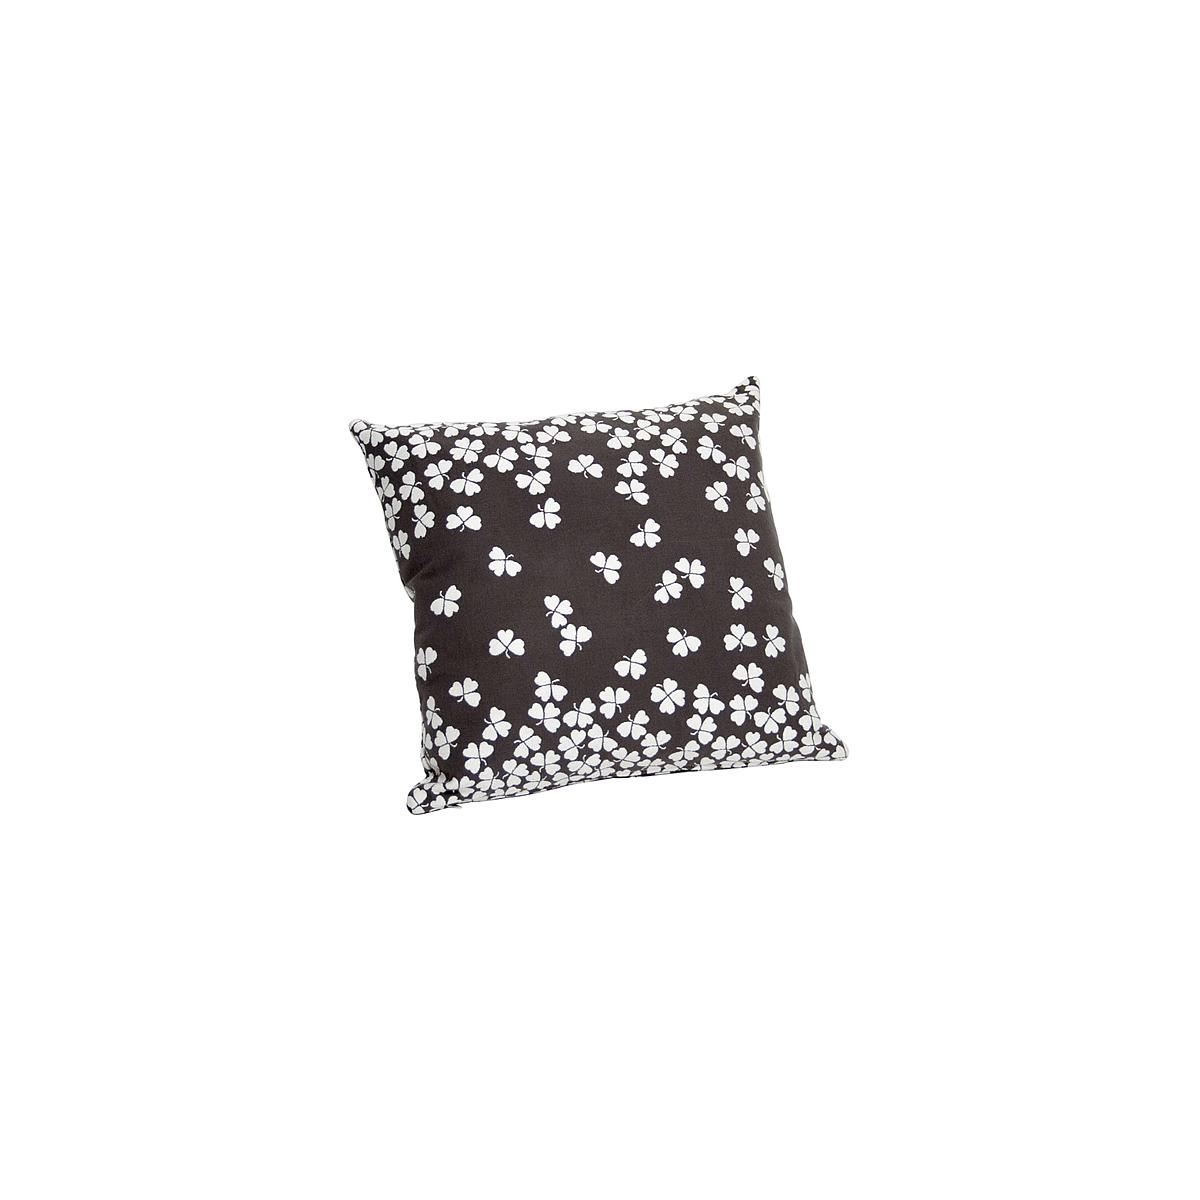 TREFLE by Fermob Coussin 44x44 cm Carbone